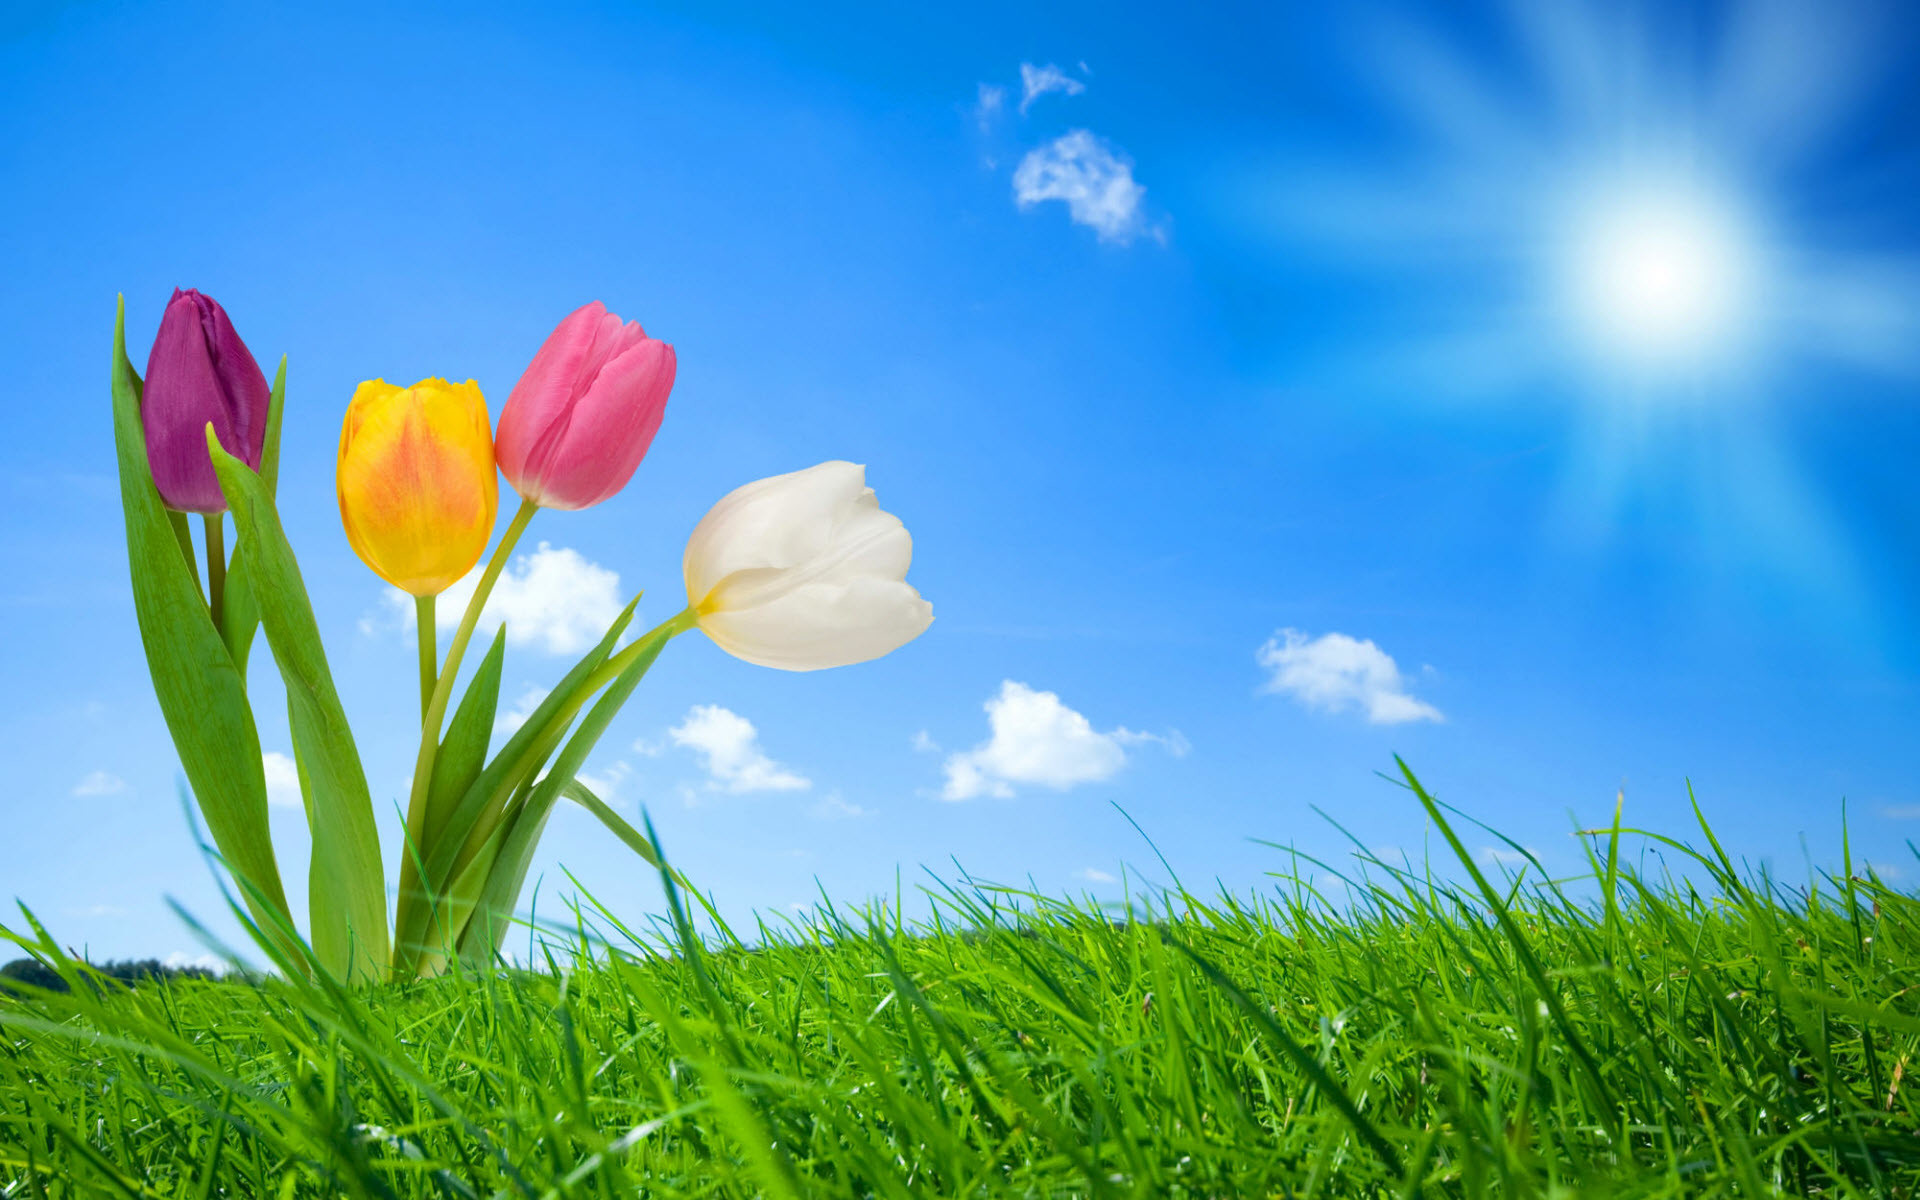 Free Spring Wallpaper Backgrounds | 2012 Nature Wallpapers. All images are  copyrighted by their .